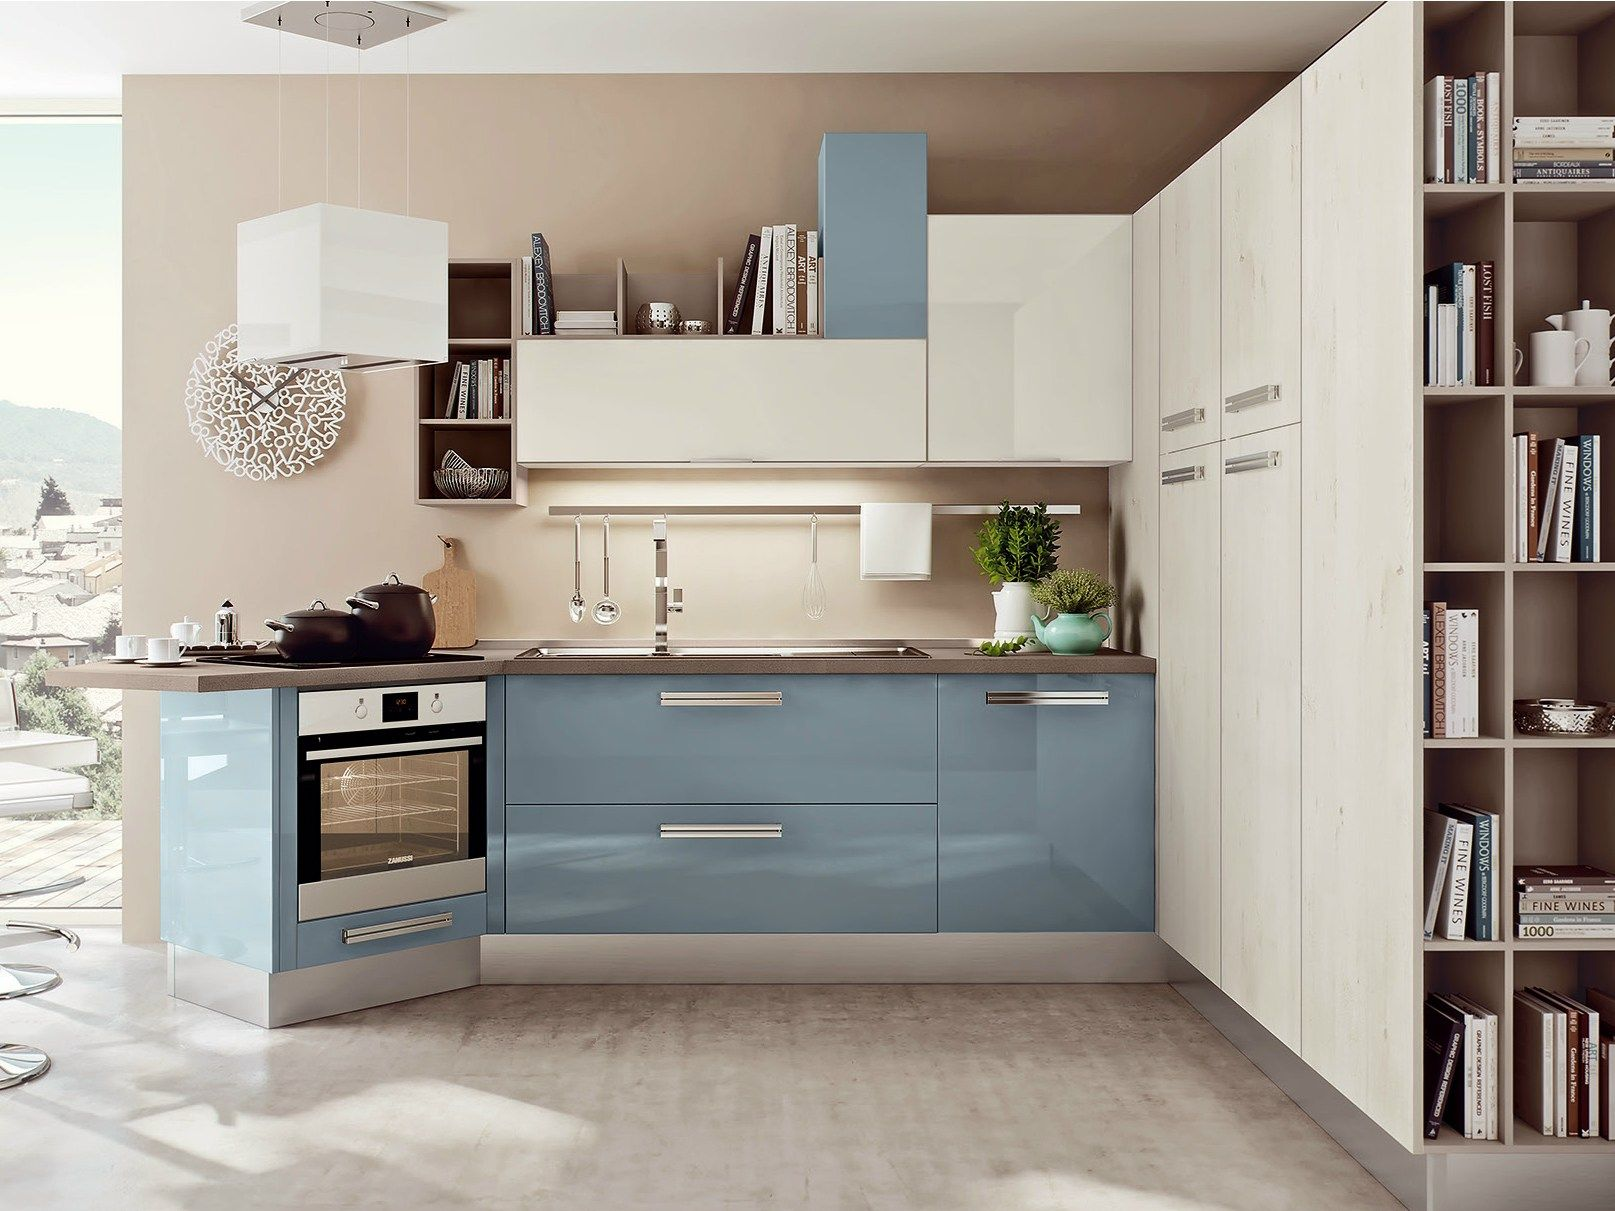 Cucina Kyra Creo Prezzo lacquered fitted kitchen with peninsula swing collection by